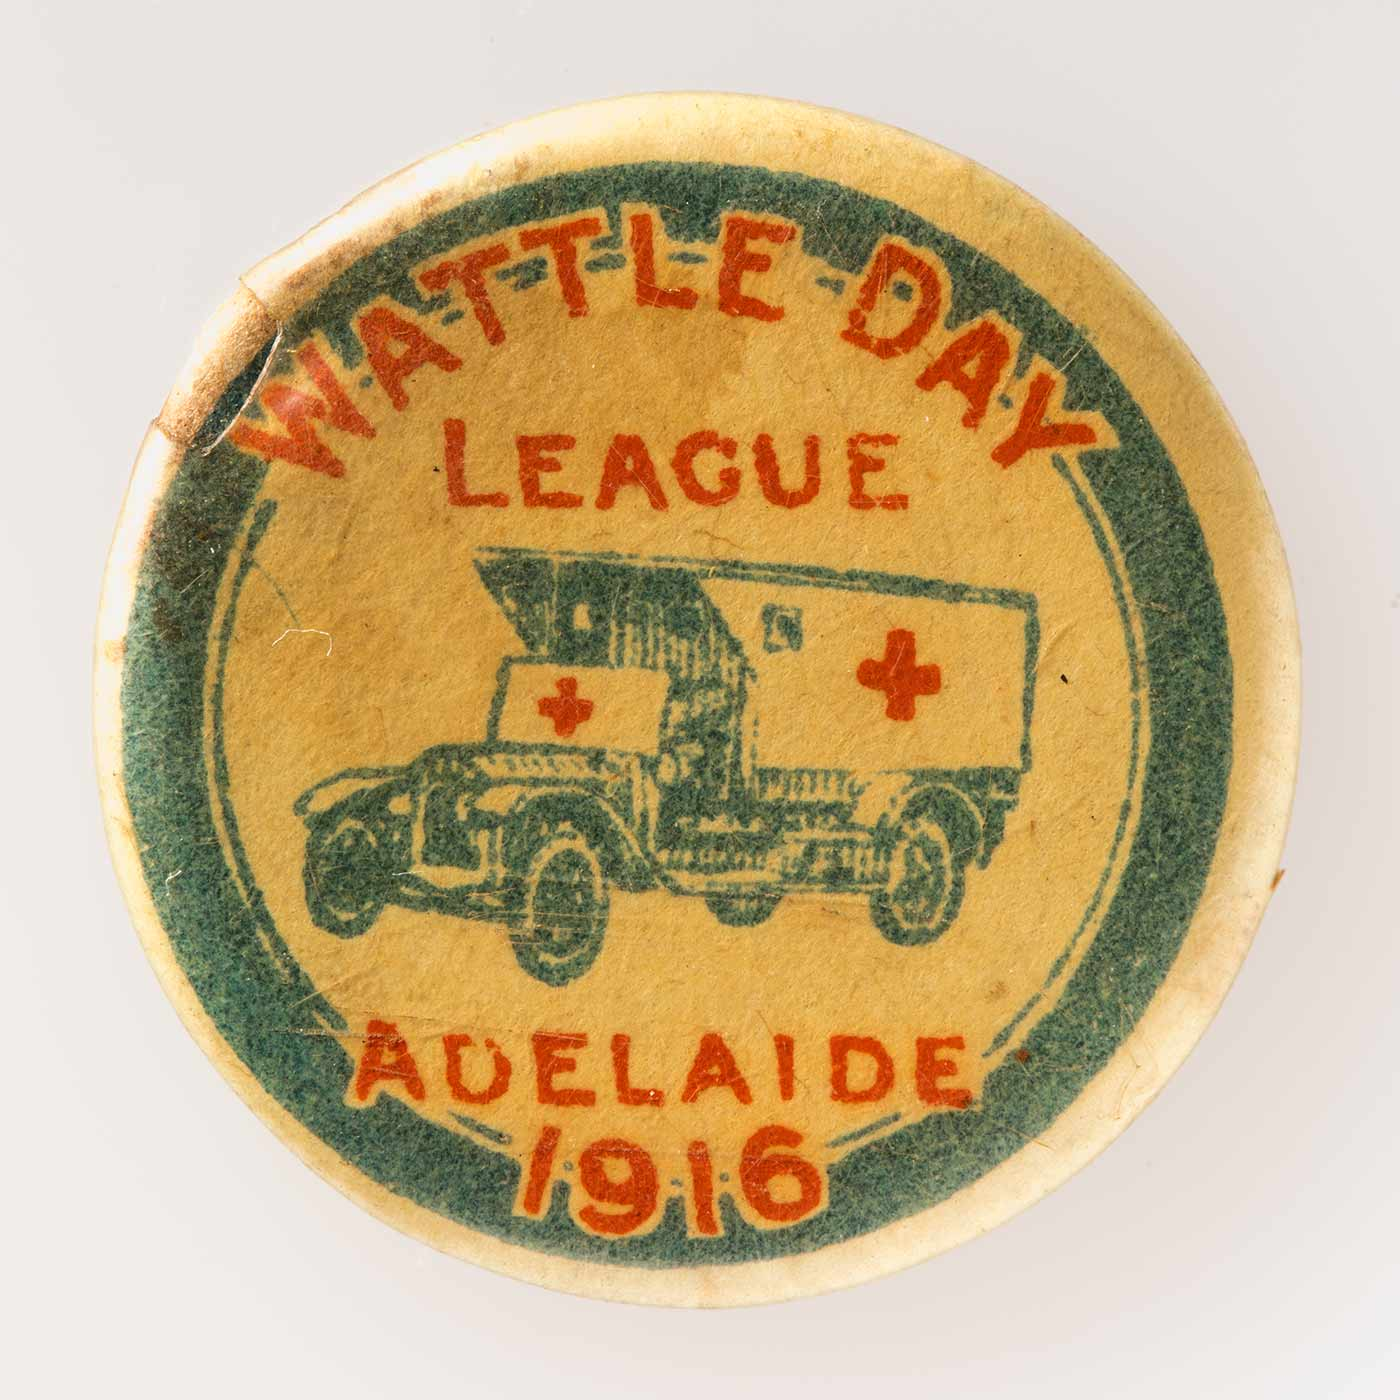 Circular Wattle Day badge, depicting ambulance in blue & white with red crosses on it, white background, blue border. Inscriptions: 'WATTLE DAY / LEAGUE' (in red above ambulance); 'ADELAIDE / 1916' (in red below ambulance). Plastic coated. - click to view larger image